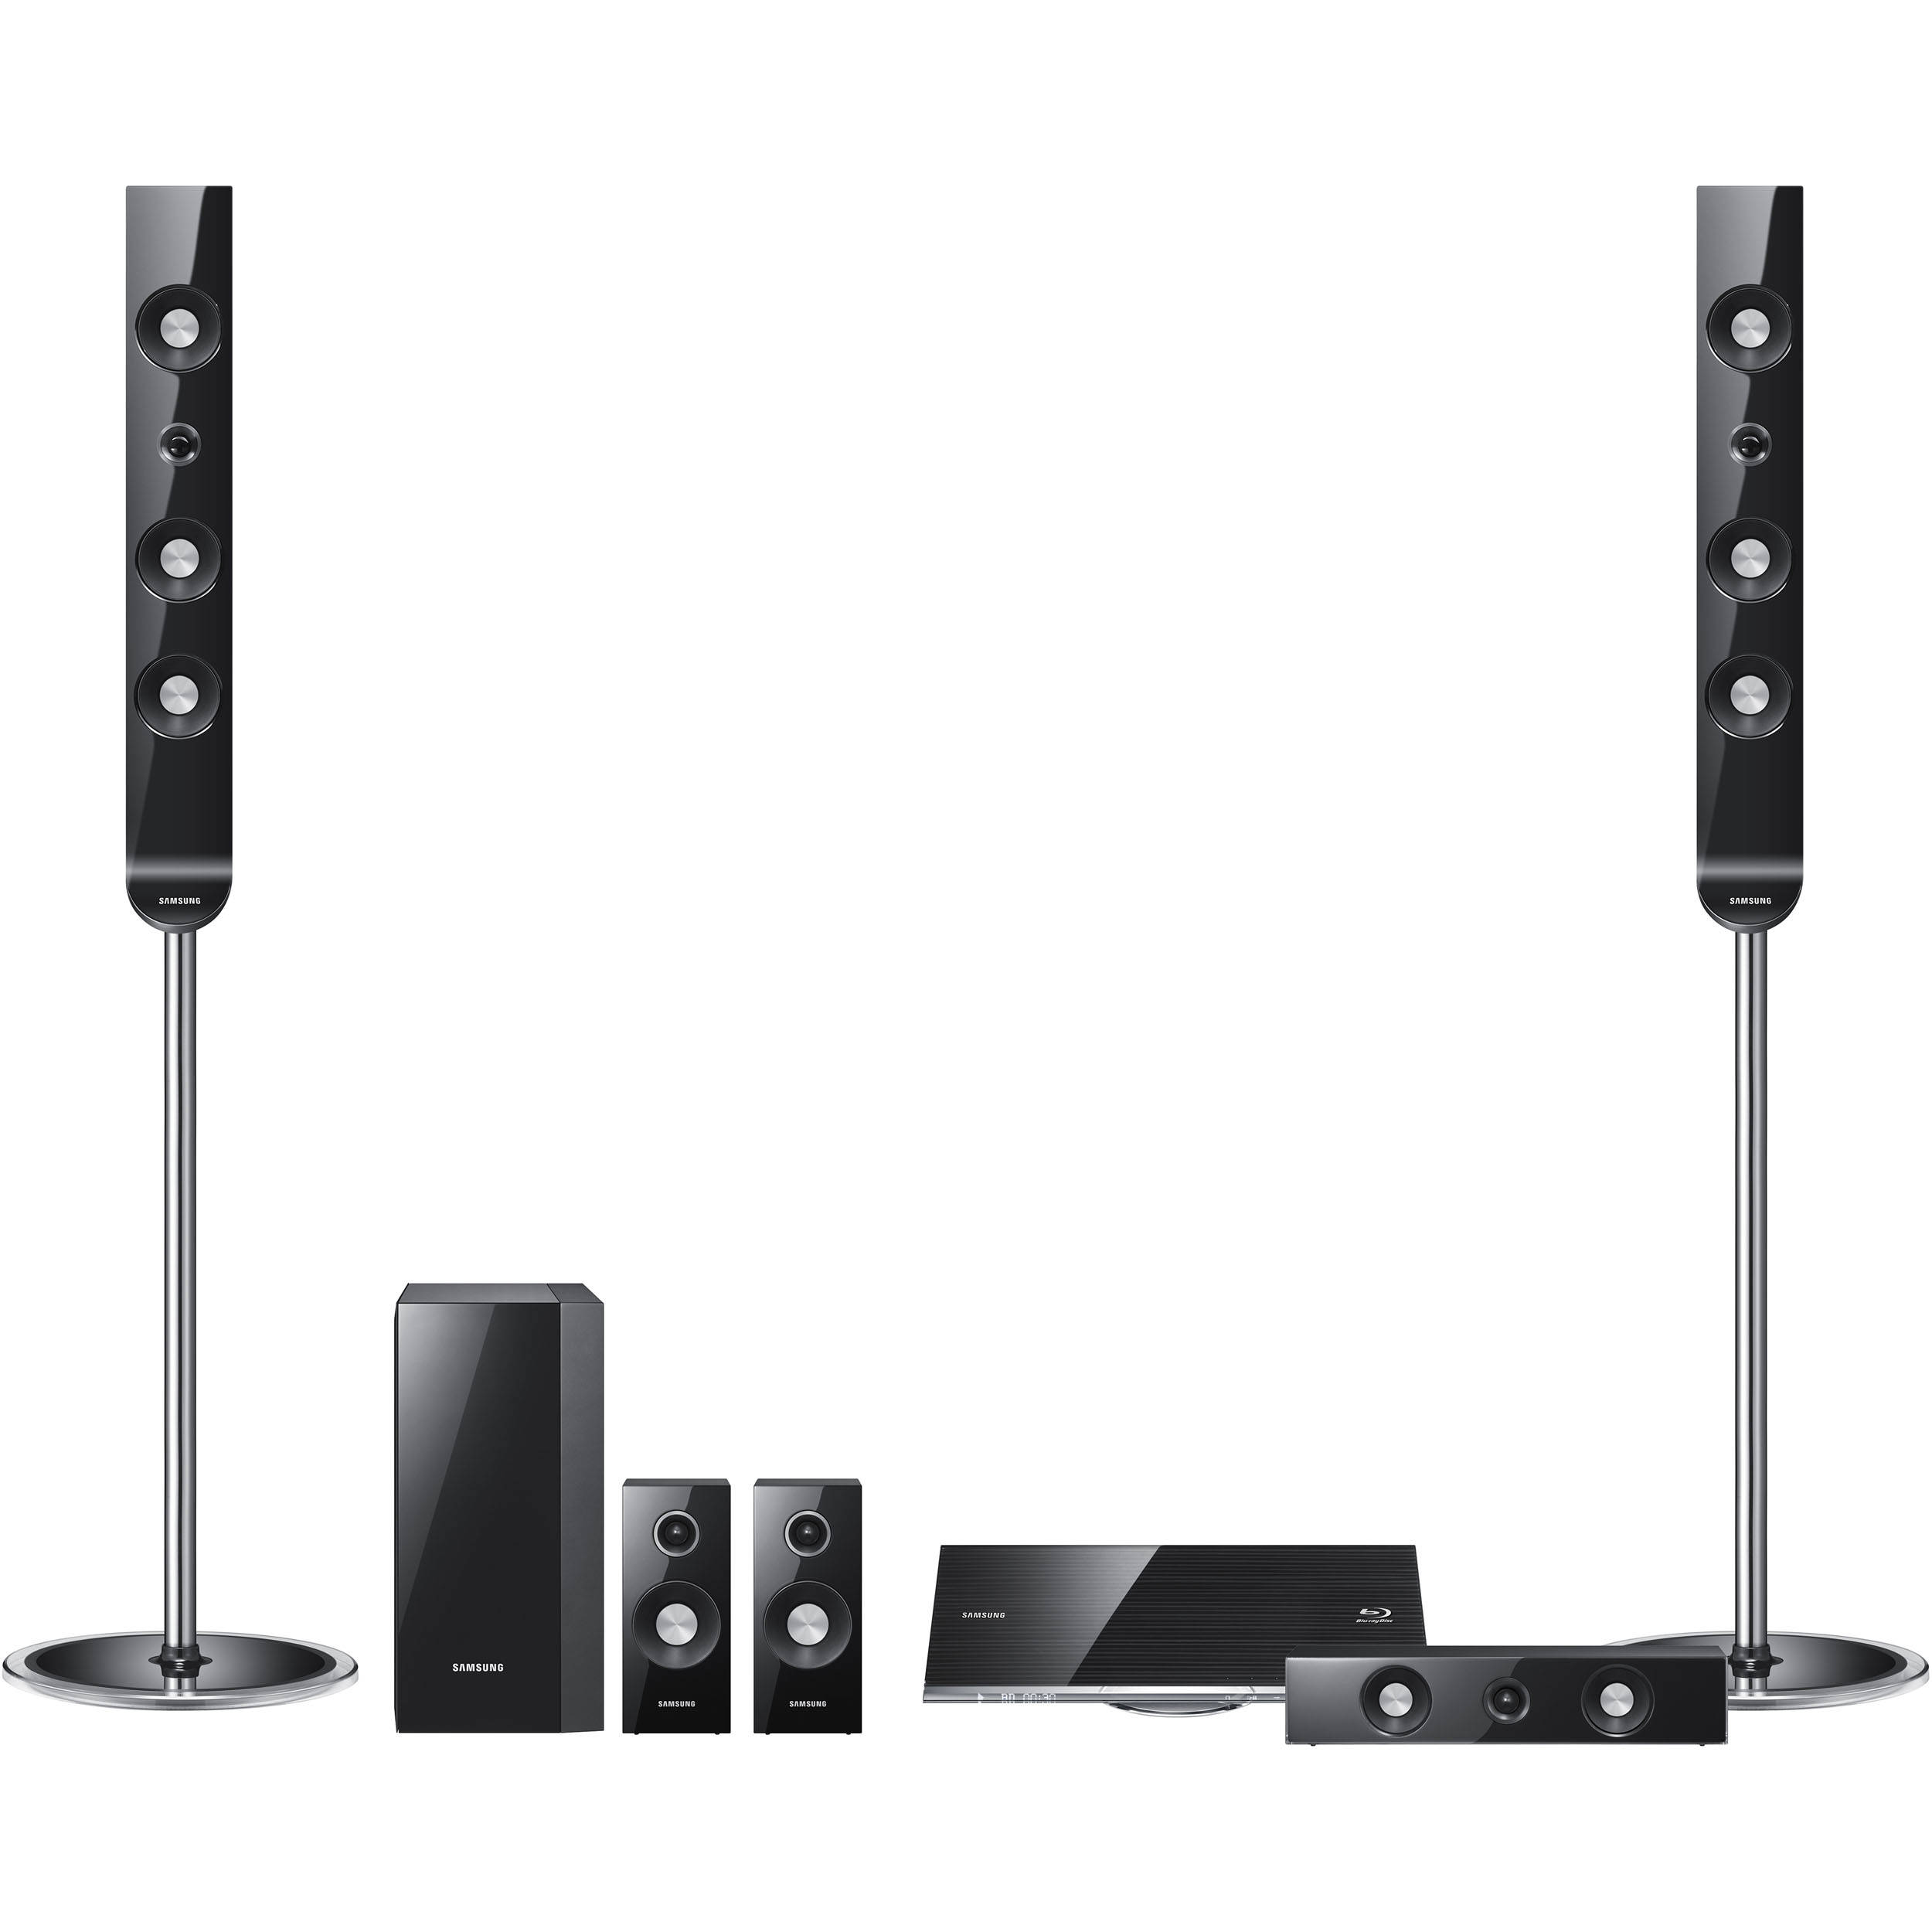 samsung ht c7530w 5 1 channel blu ray home theater ht. Black Bedroom Furniture Sets. Home Design Ideas